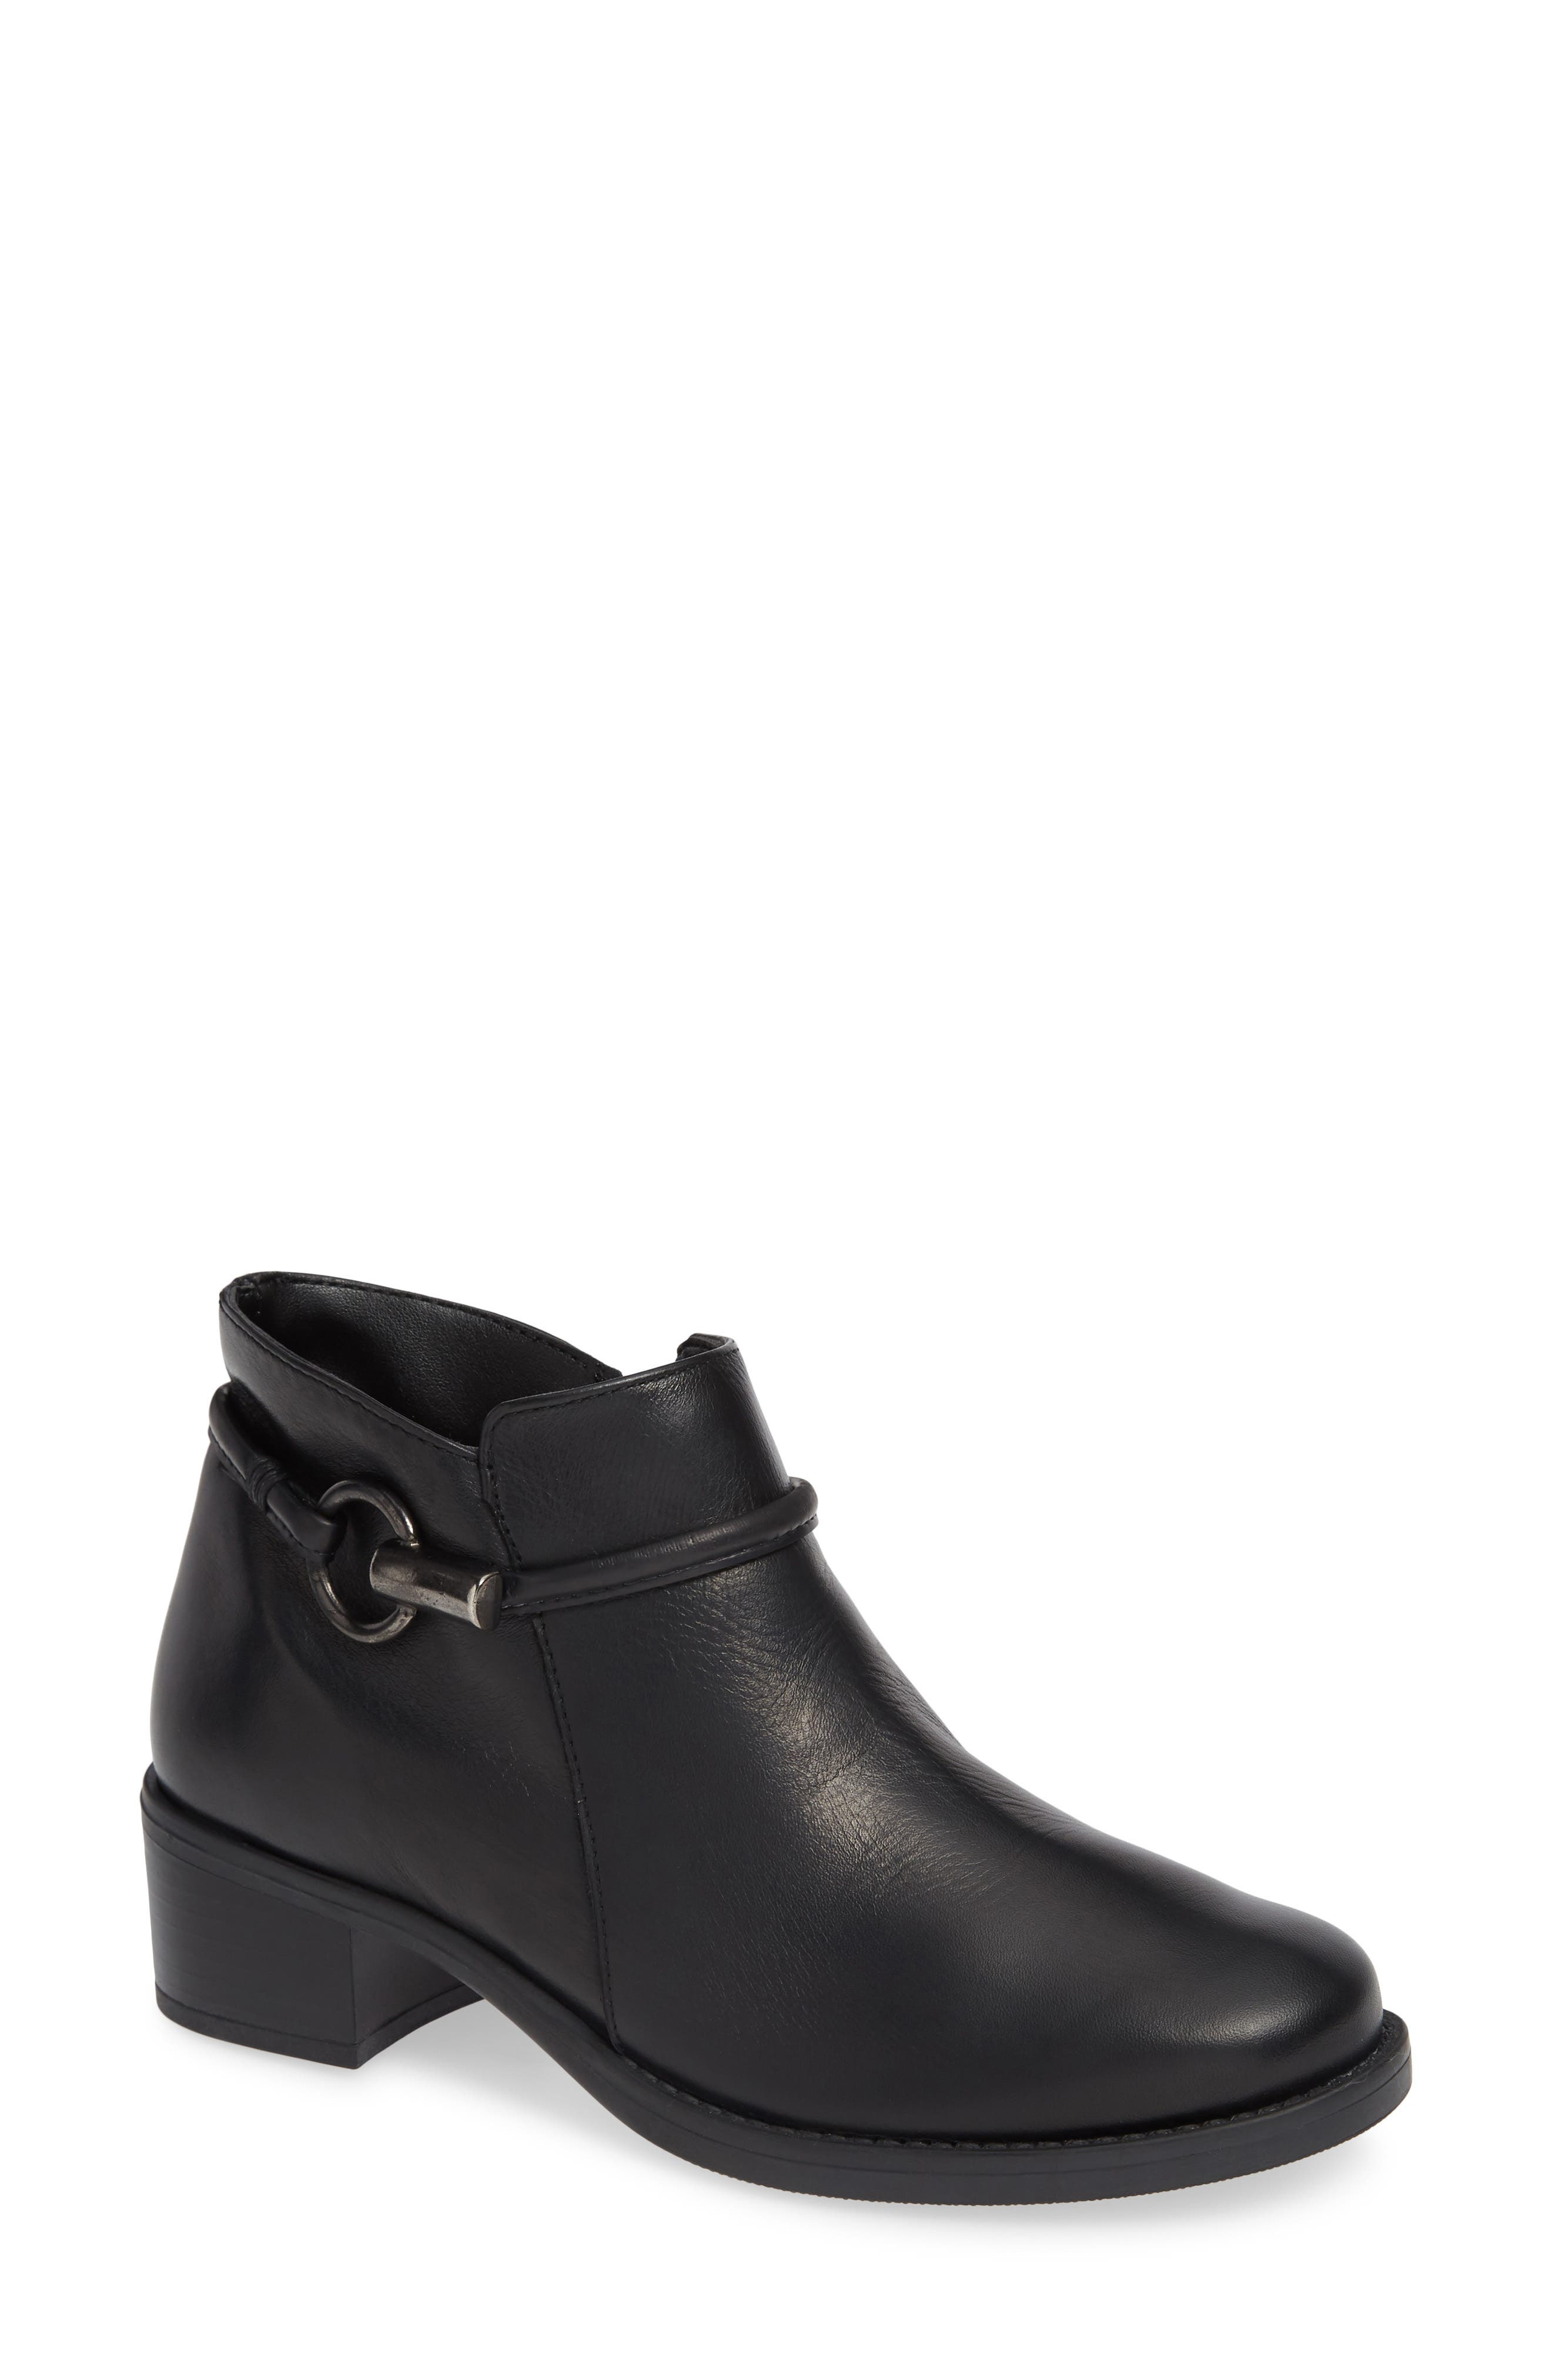 David Tate Miller Low Bootie, Black